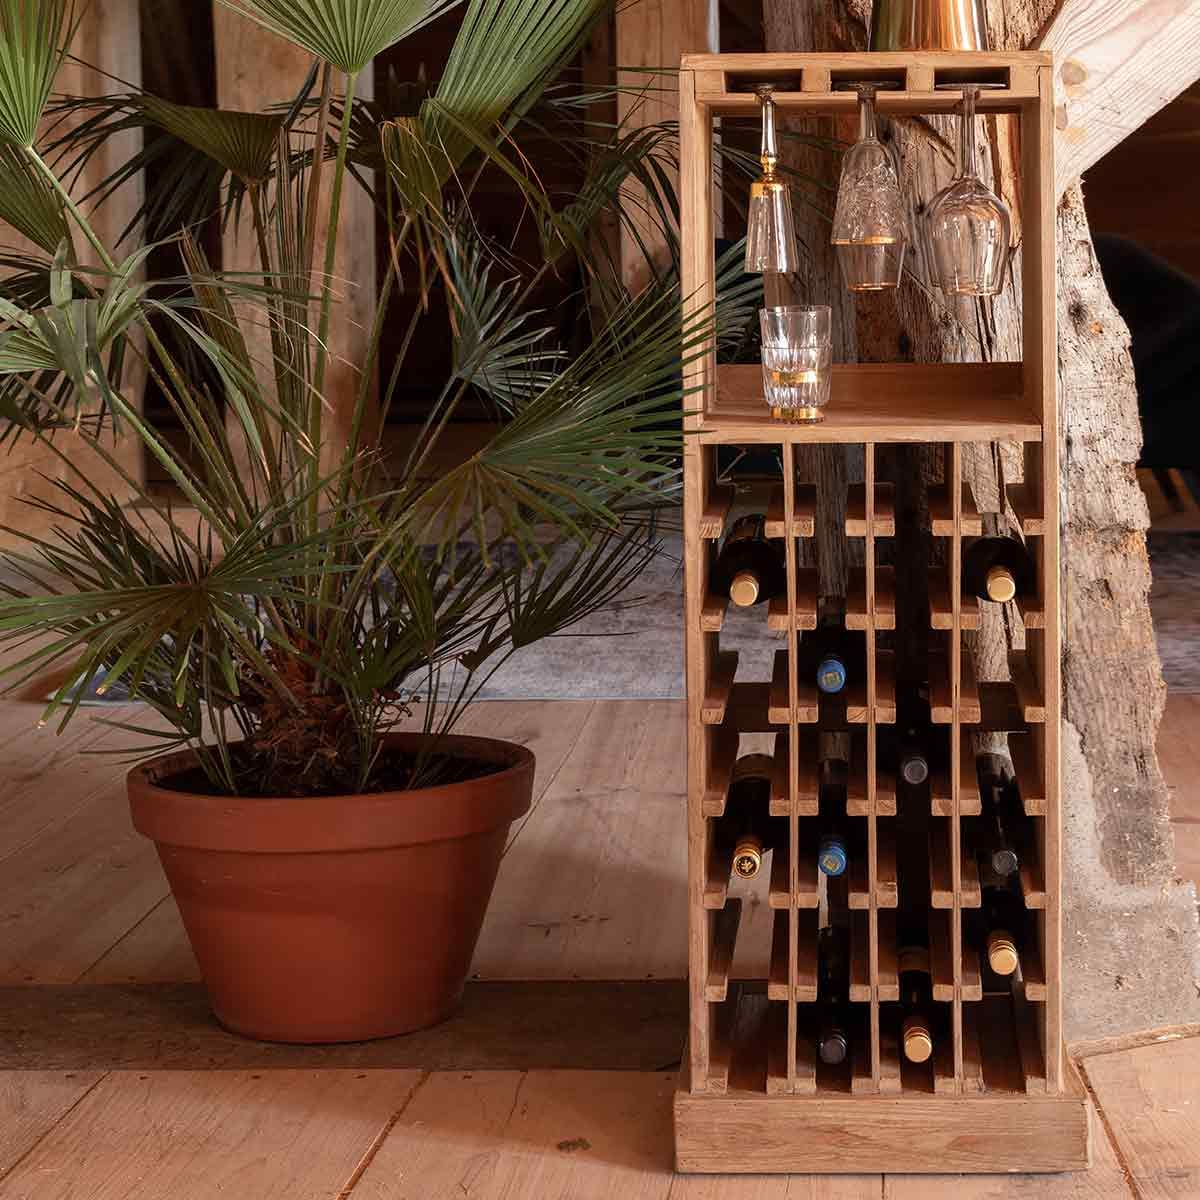 Porte-bouteilles / mini-bar en bois de sapin 28 compartiments Claude Dutchbone - naturel